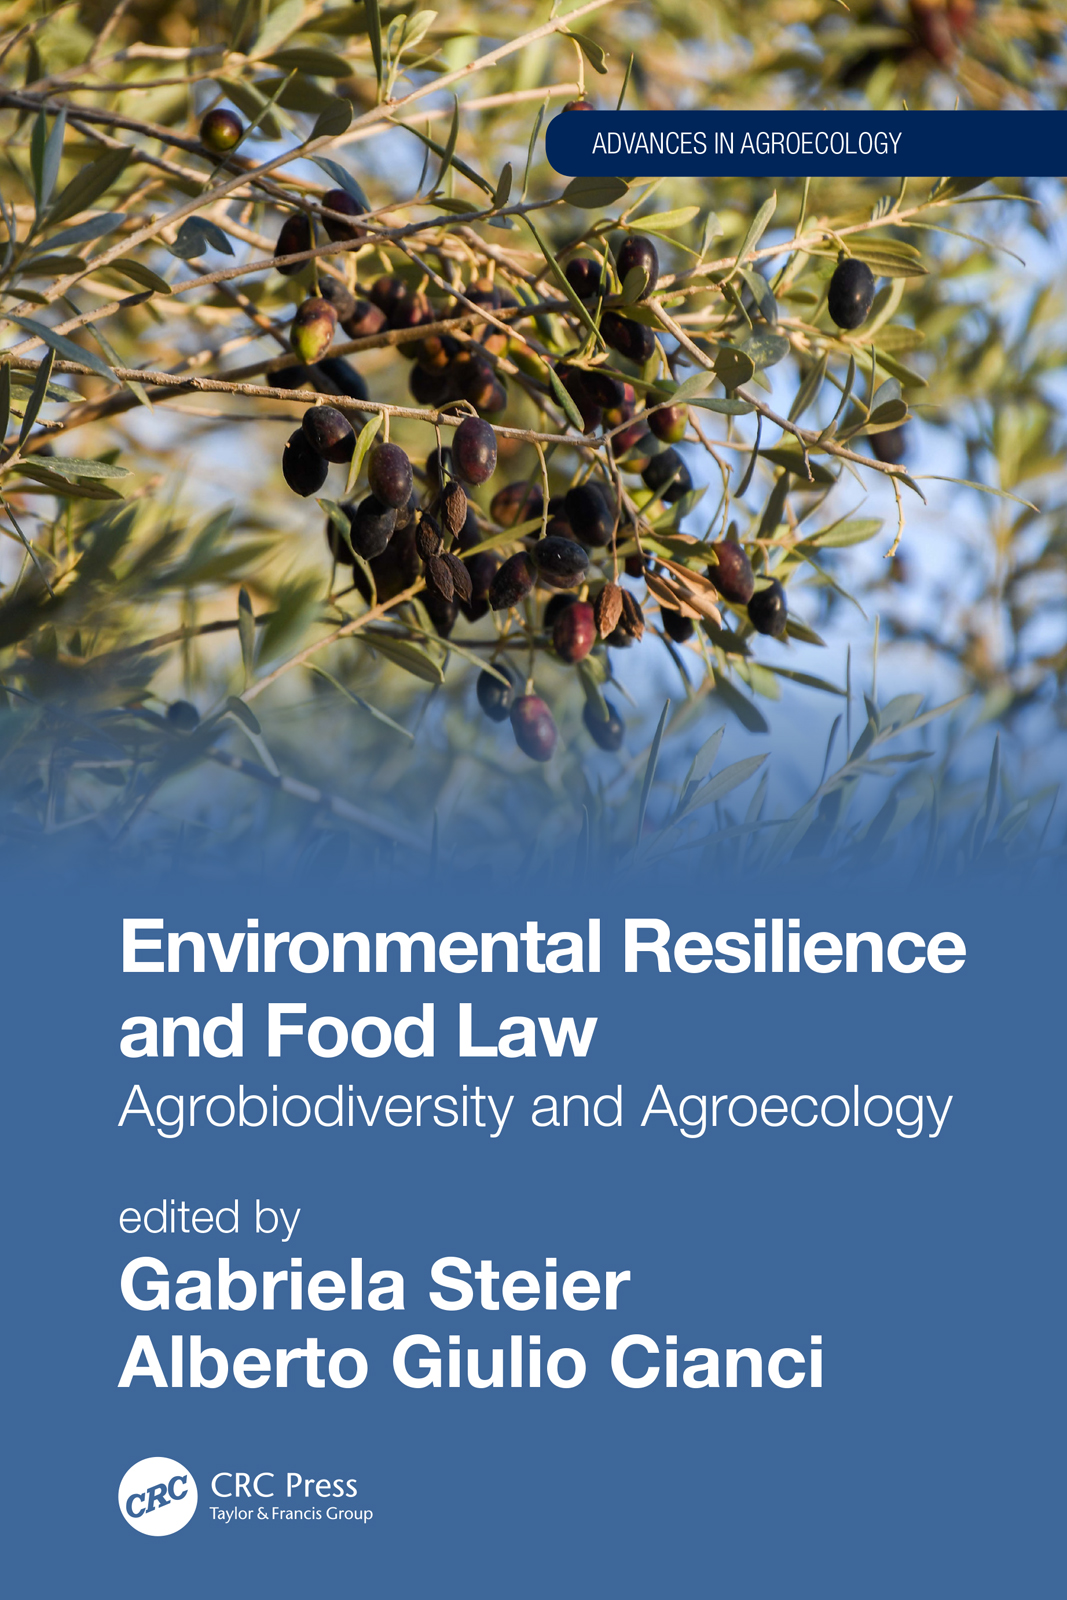 Environmental Resilience and Food Law: Agrobiodiversity and Agroecology book cover